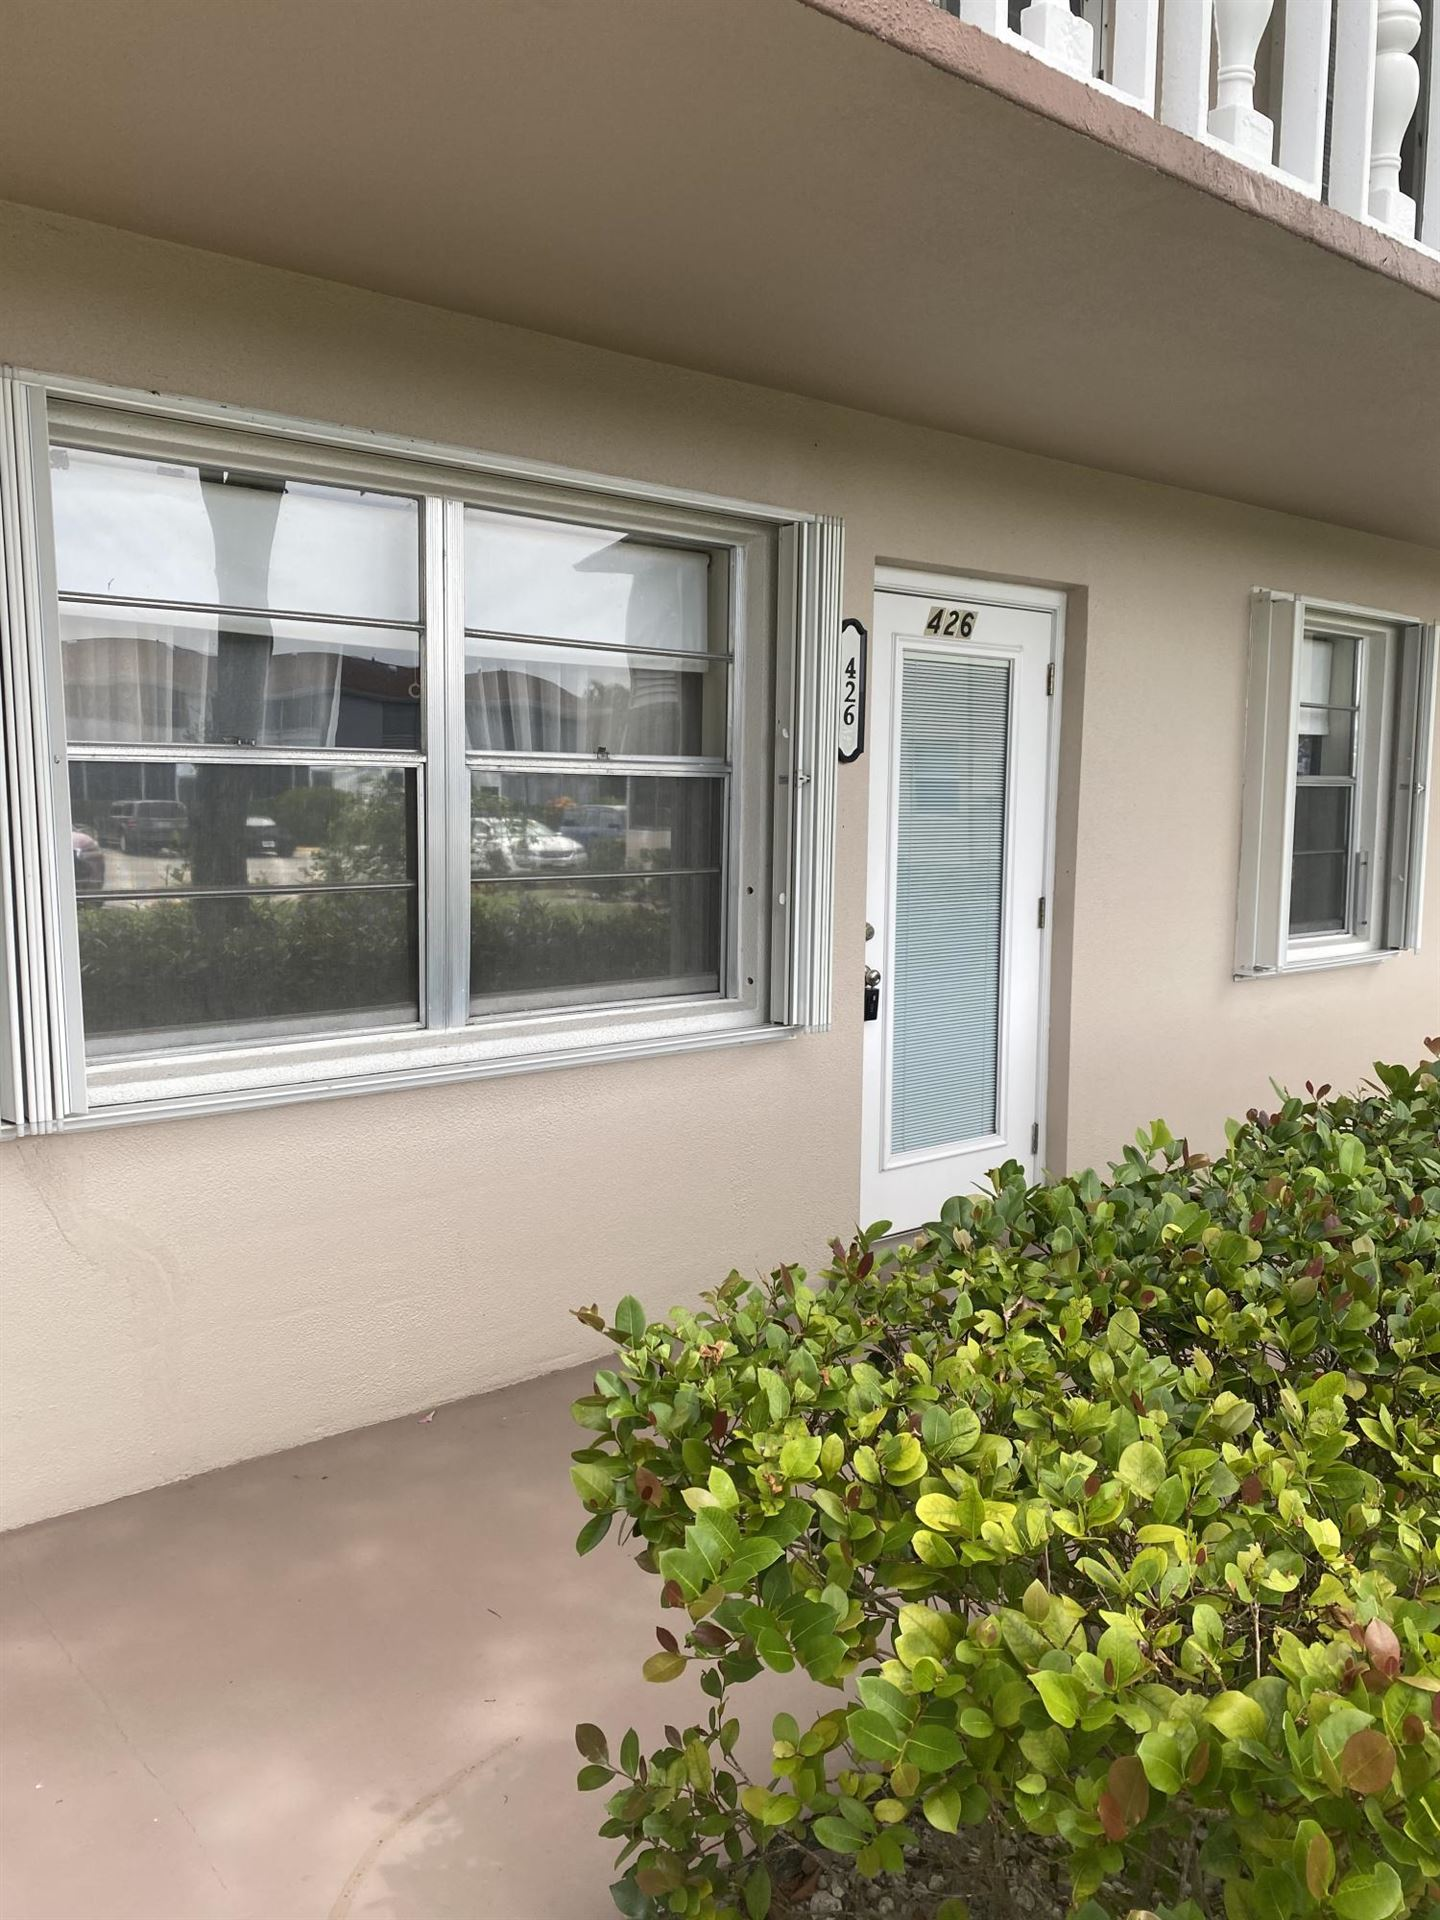 426 Chatham U #426, West Palm Beach, FL 33417 - #: RX-10622933